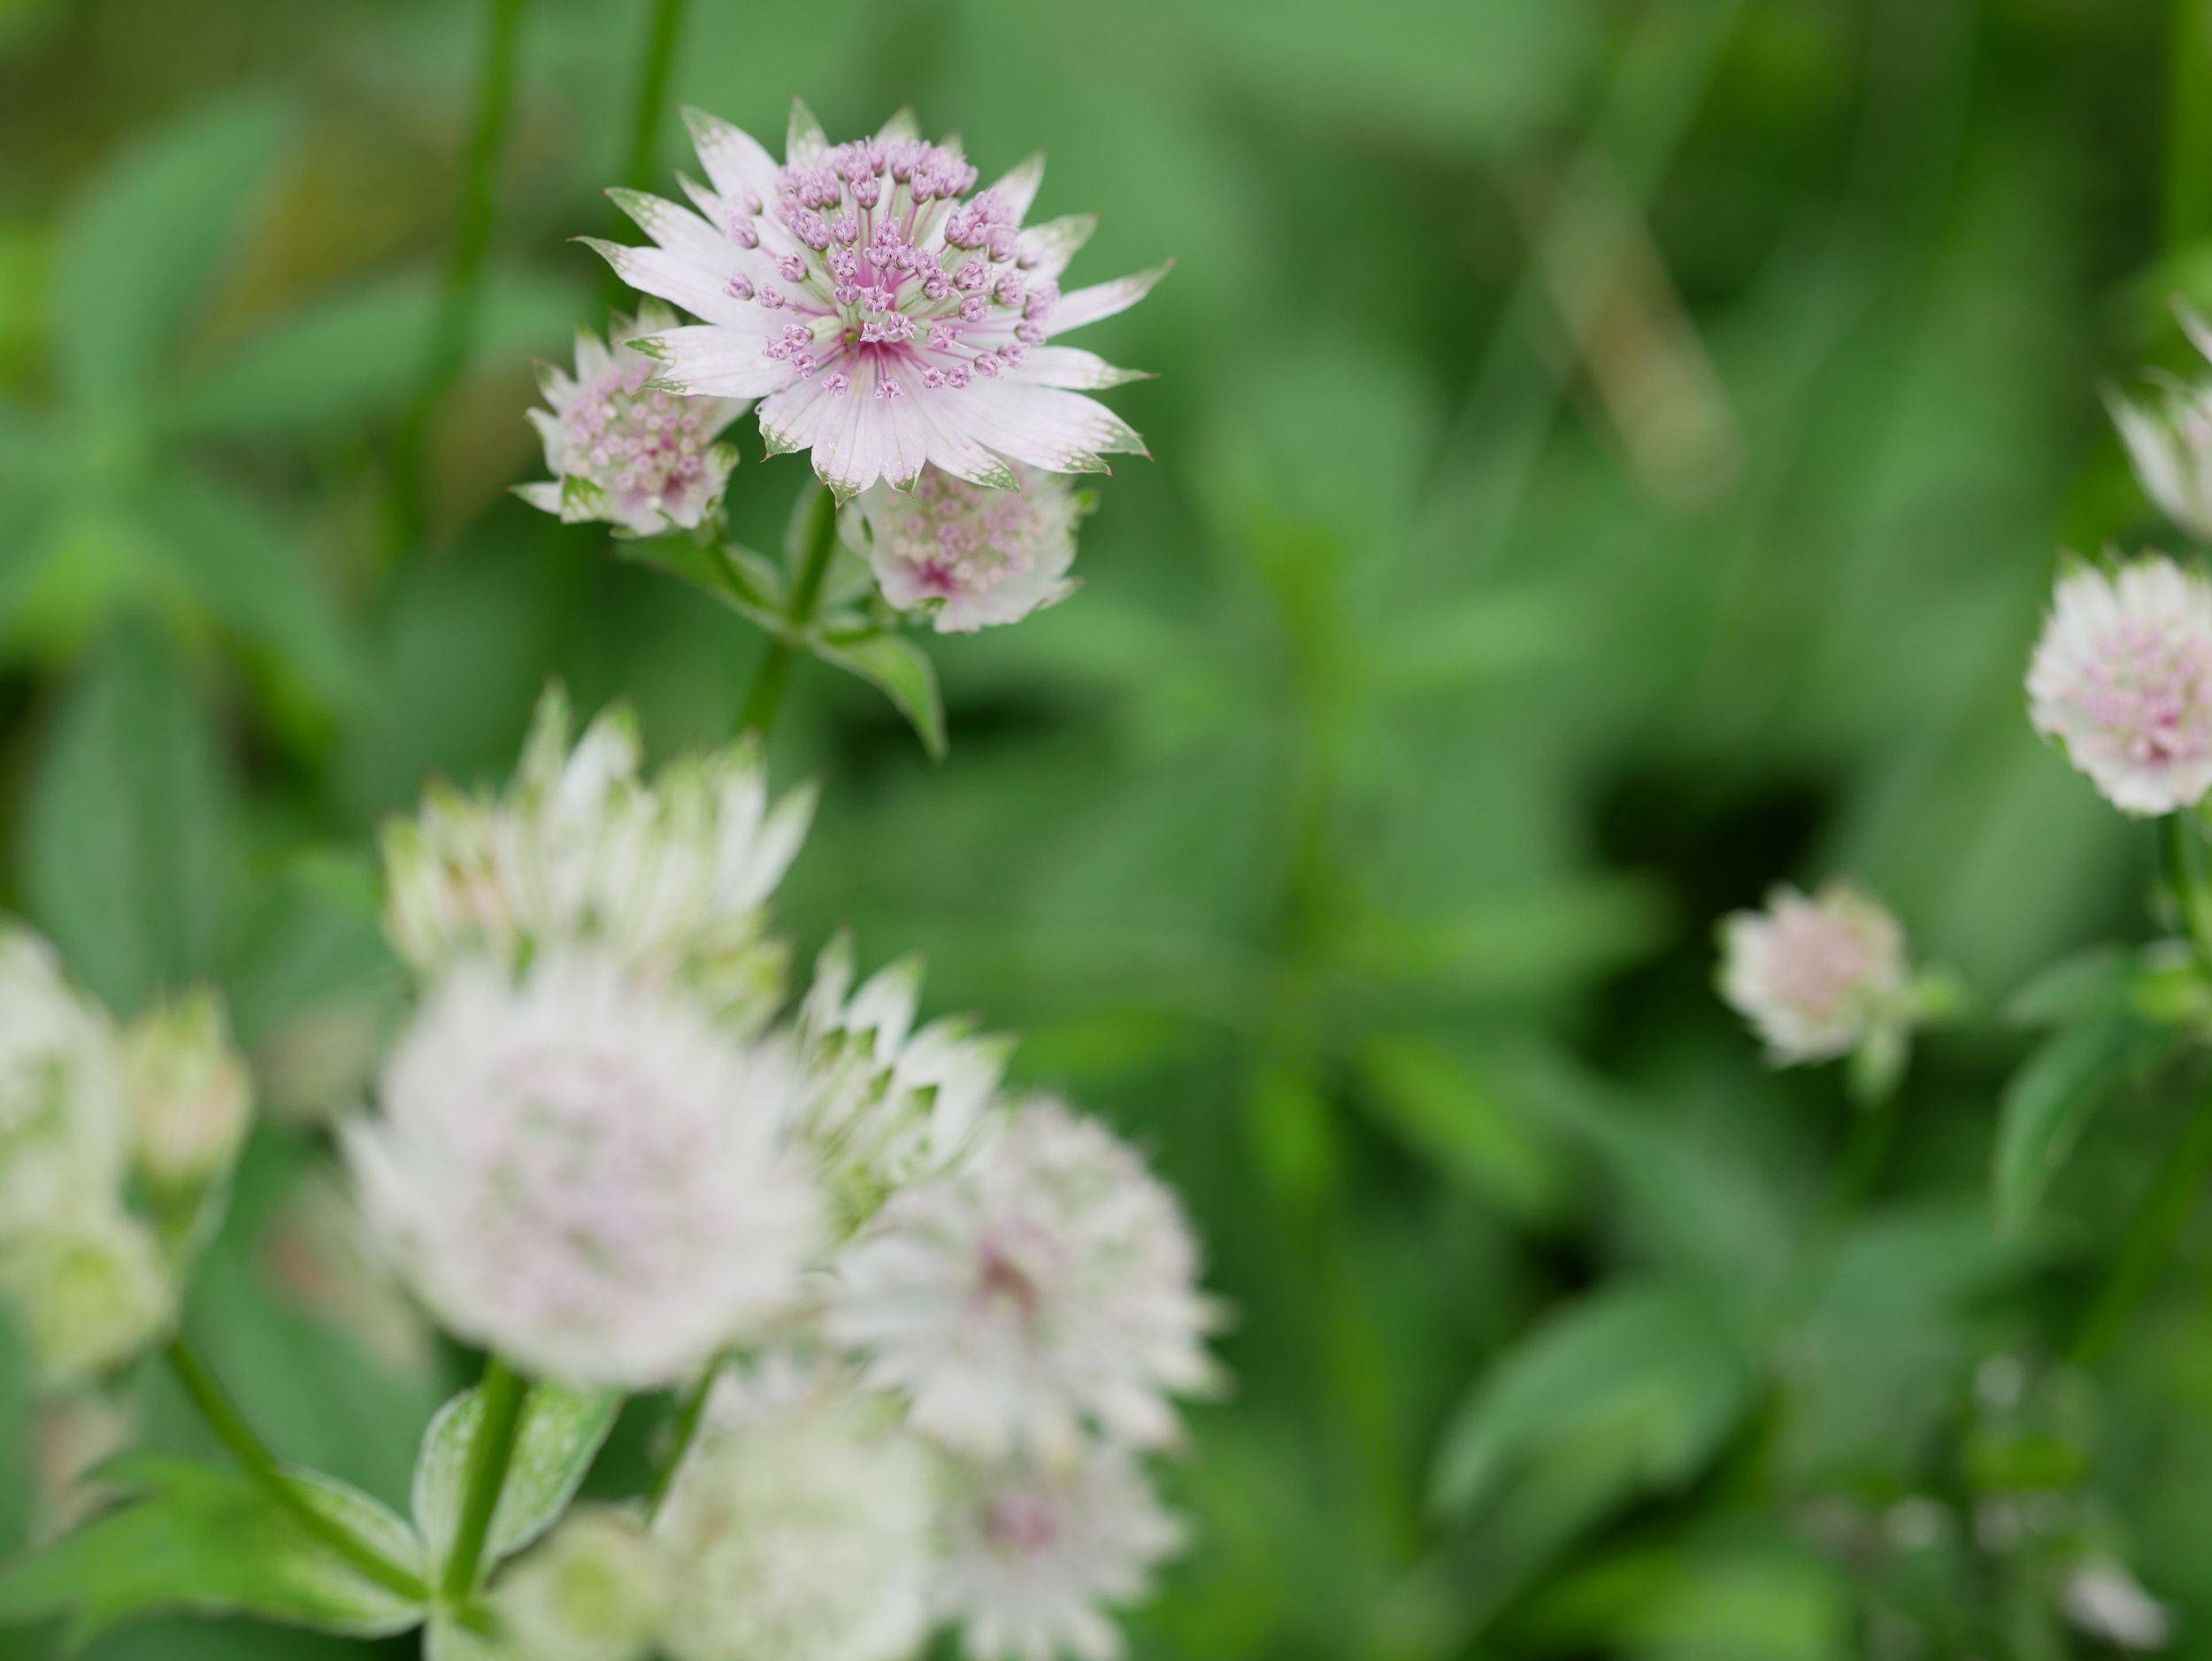 Great Masterwort - Astrantia major, (Great Masterwort, or 'Hattie's Pincushion' as it was called in the past), is a member of the Apiaceae family (parsley and carrot family).